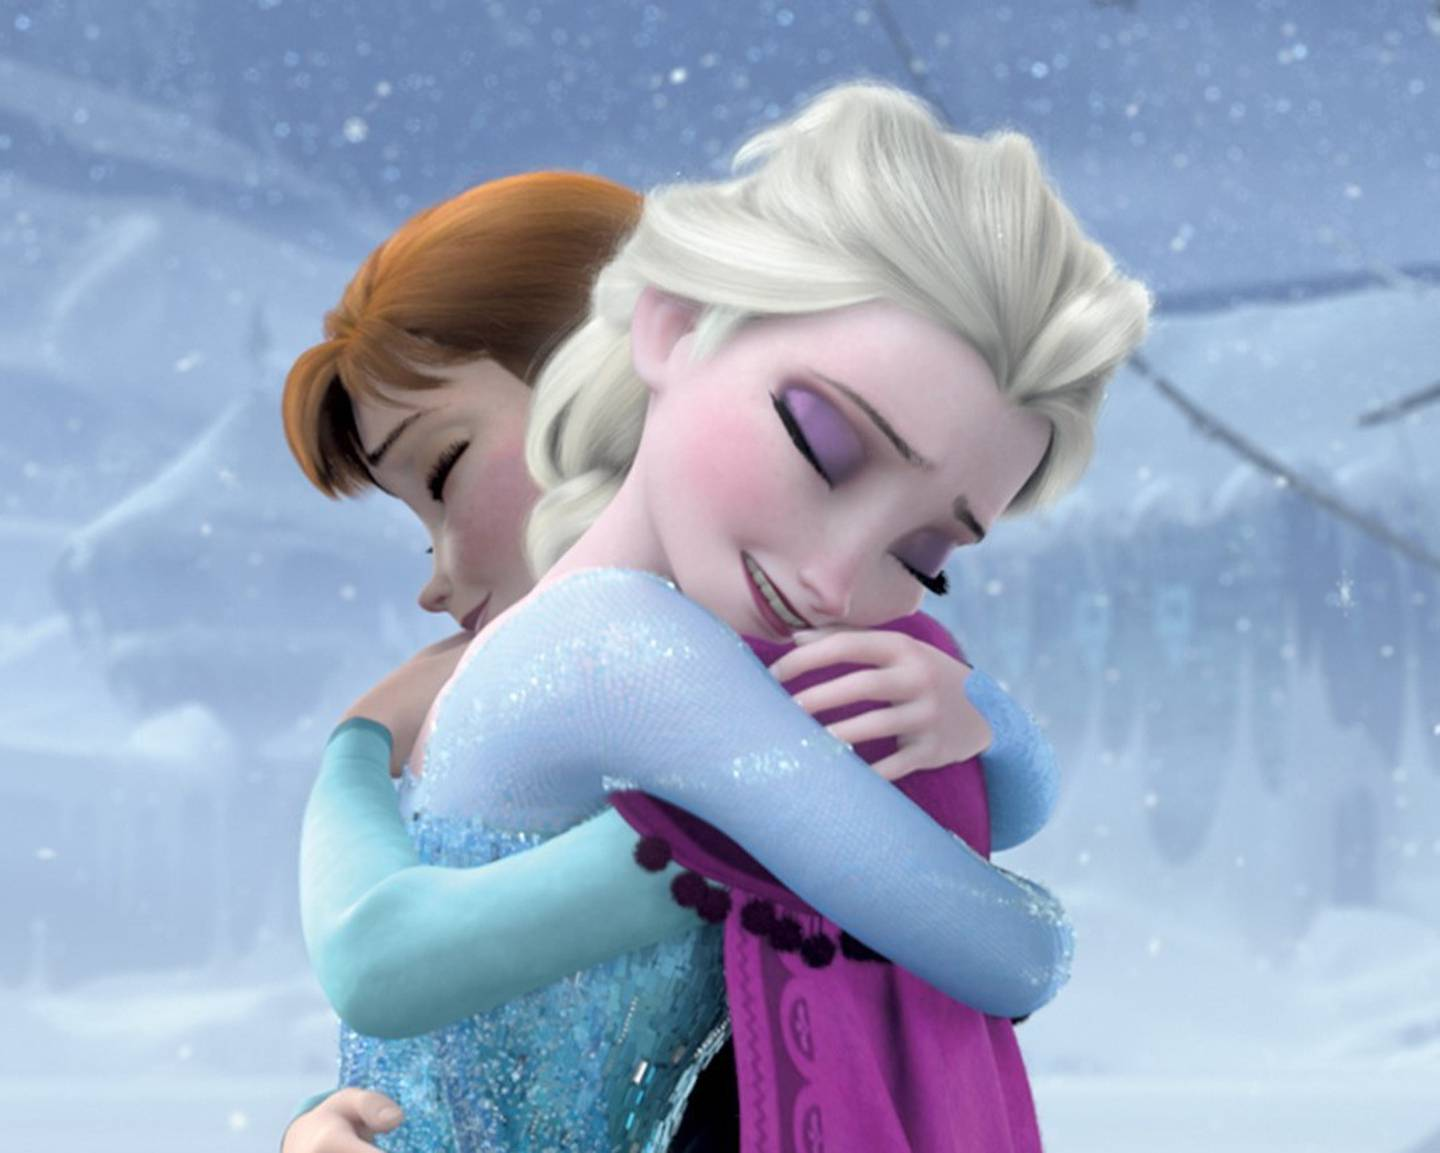 Disney's 2013 animated musical feature Frozen will soon have a te reo Māori version. Photo / Disney